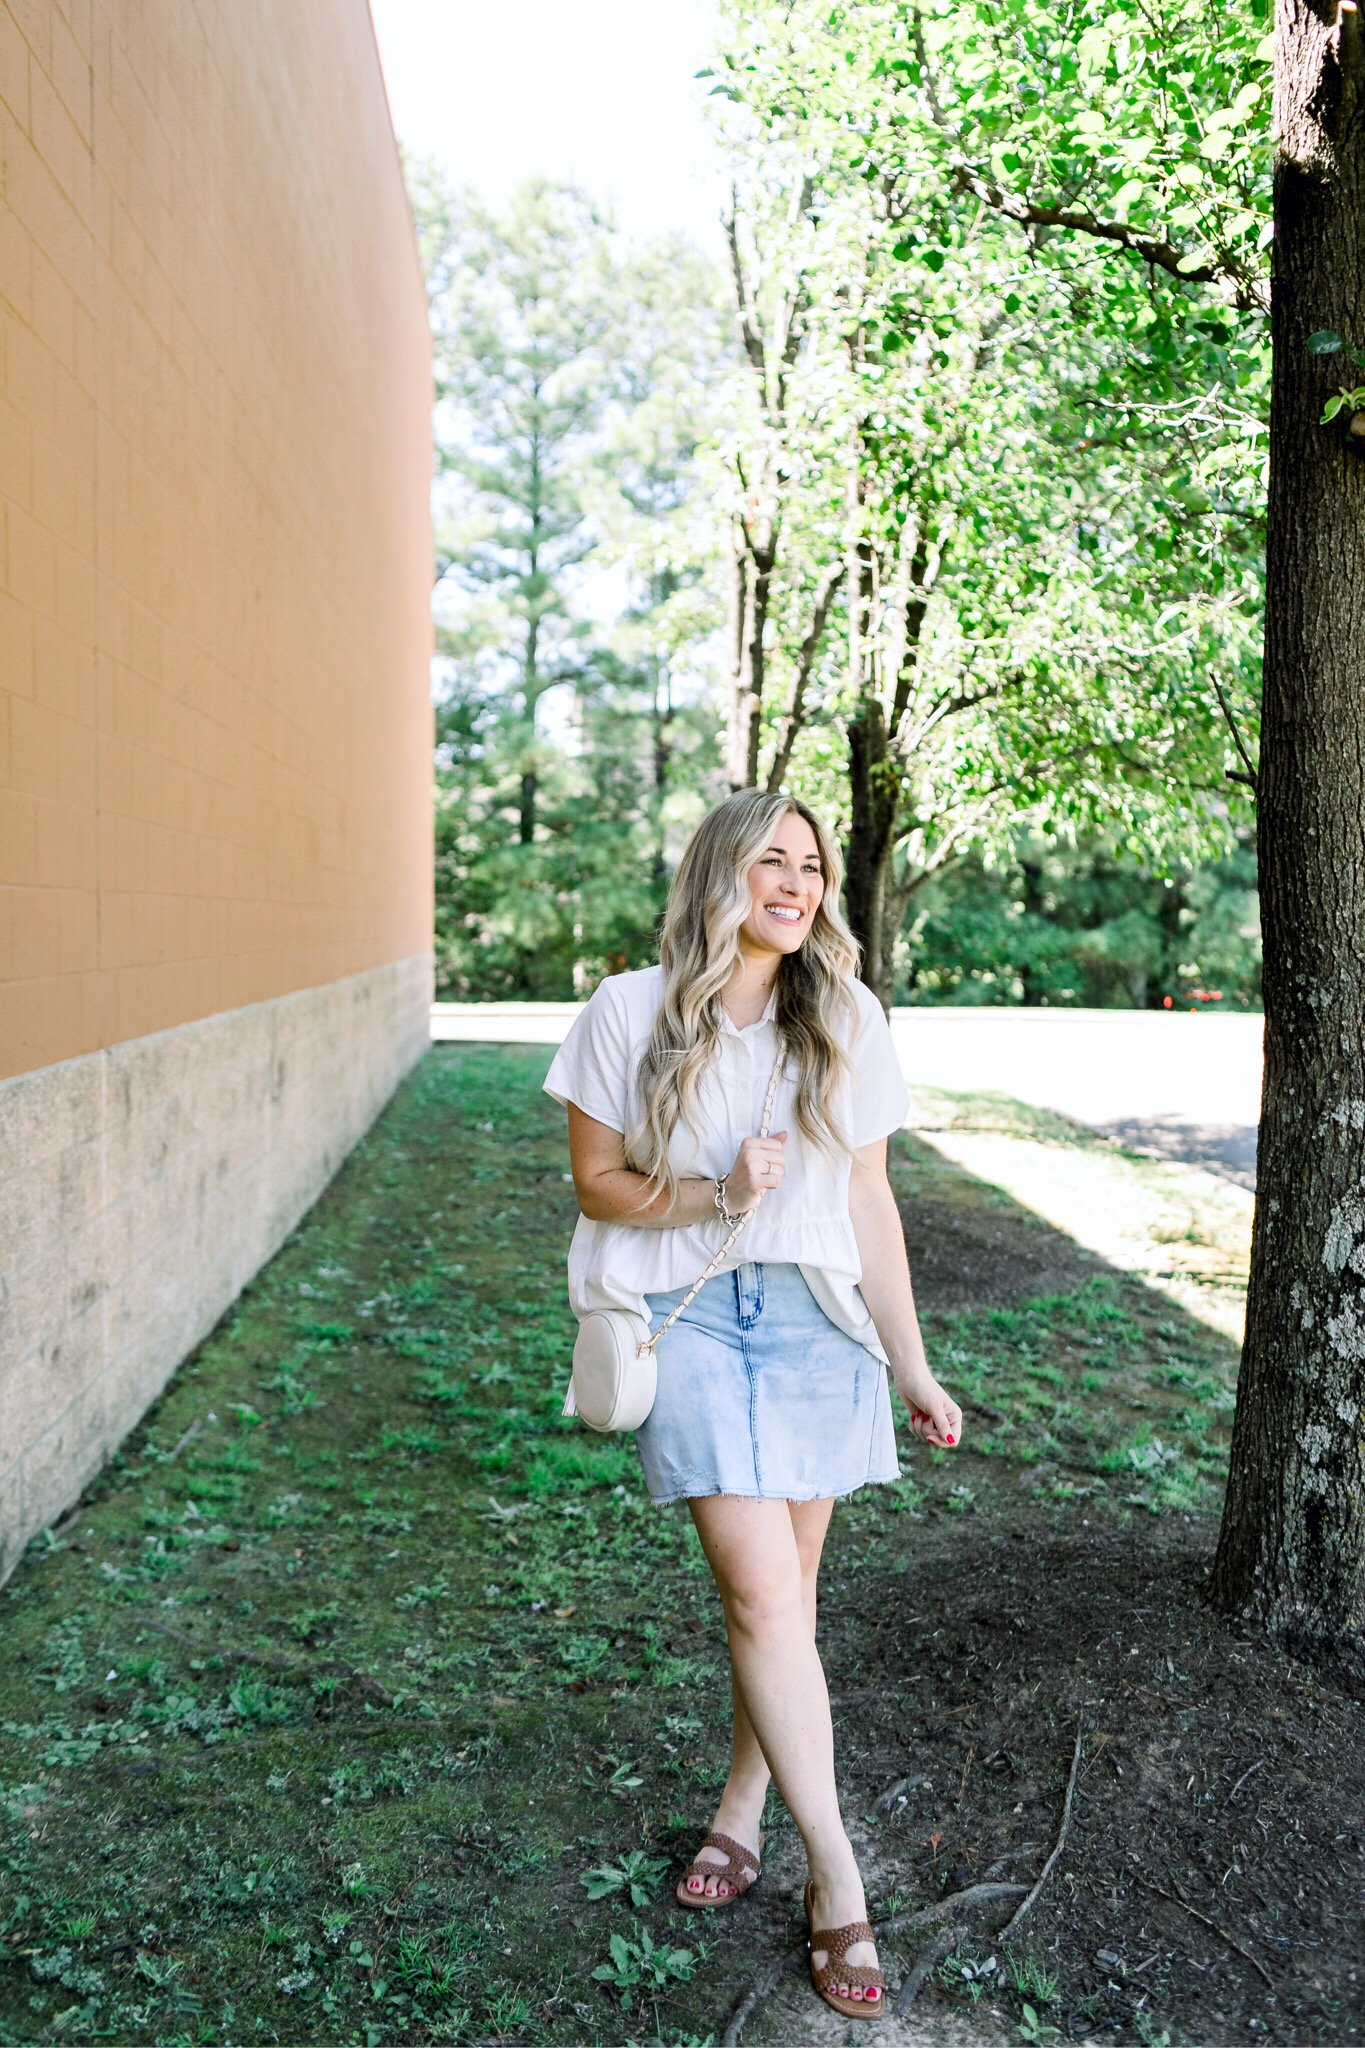 Cute college outfit from Walmart styled by top US fashion blog, Walking in Memphis in High Heels: image of a woman wearing a Time and Tru top, Sofia Jeans by Sofia Vergara denim skirt, and Sam Edelman sandals.